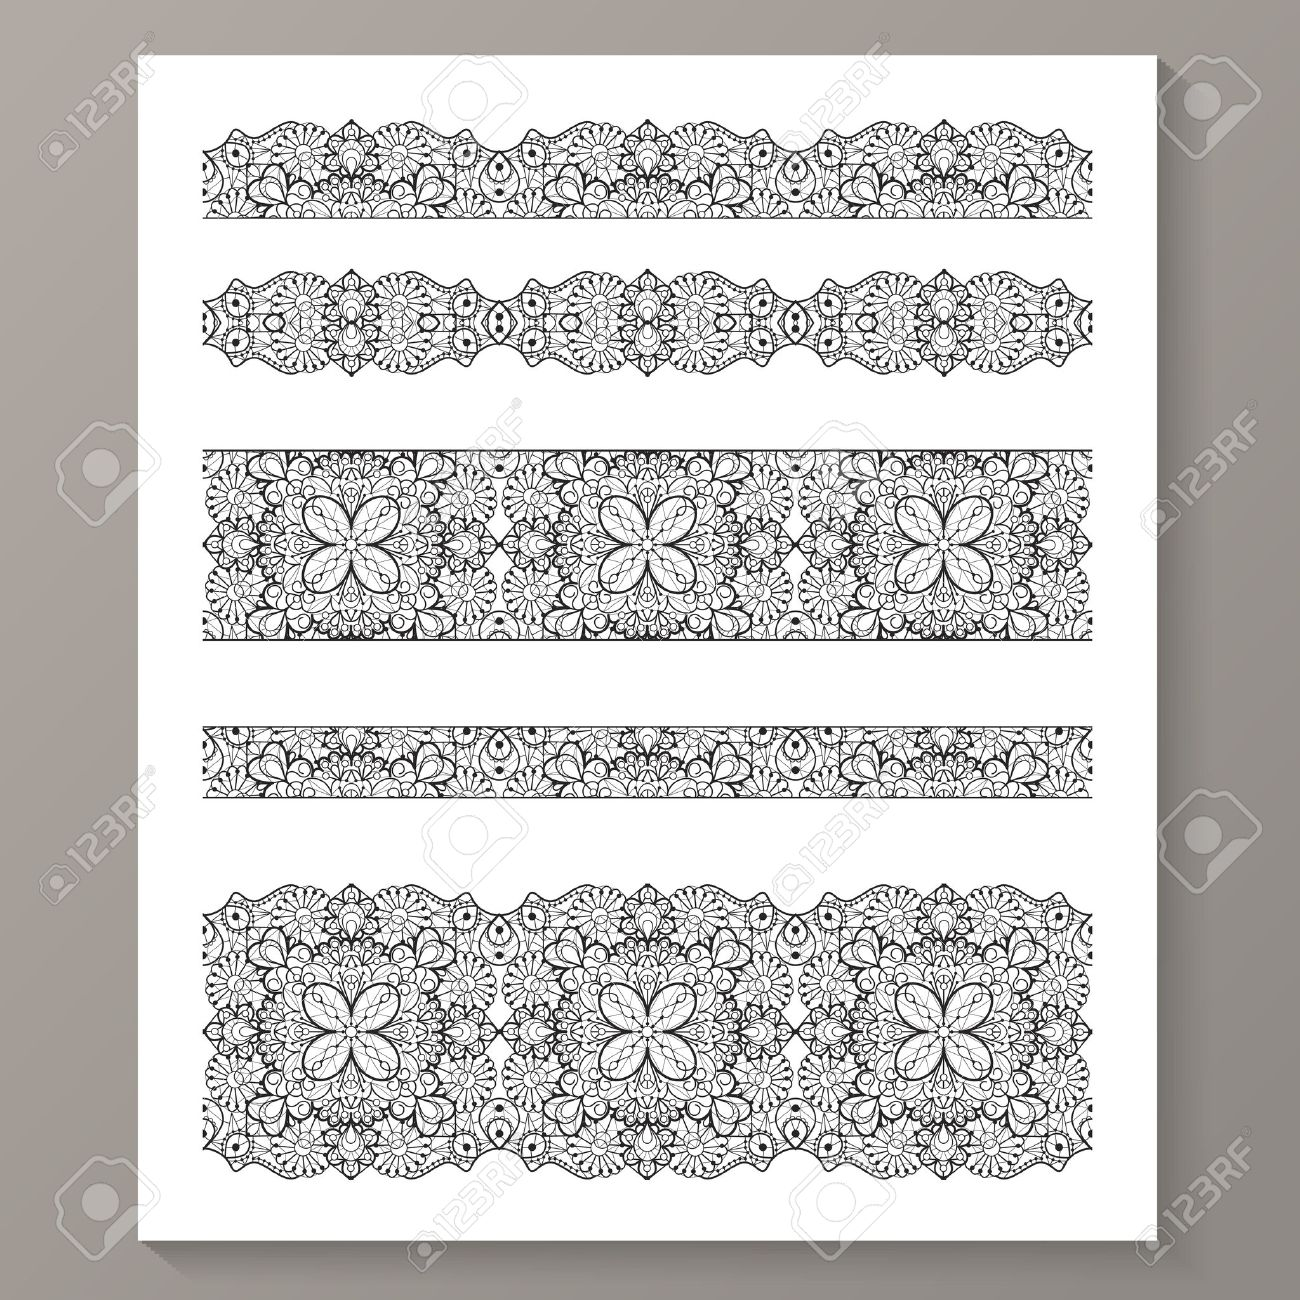 set of seamless lace borders with transparent background can